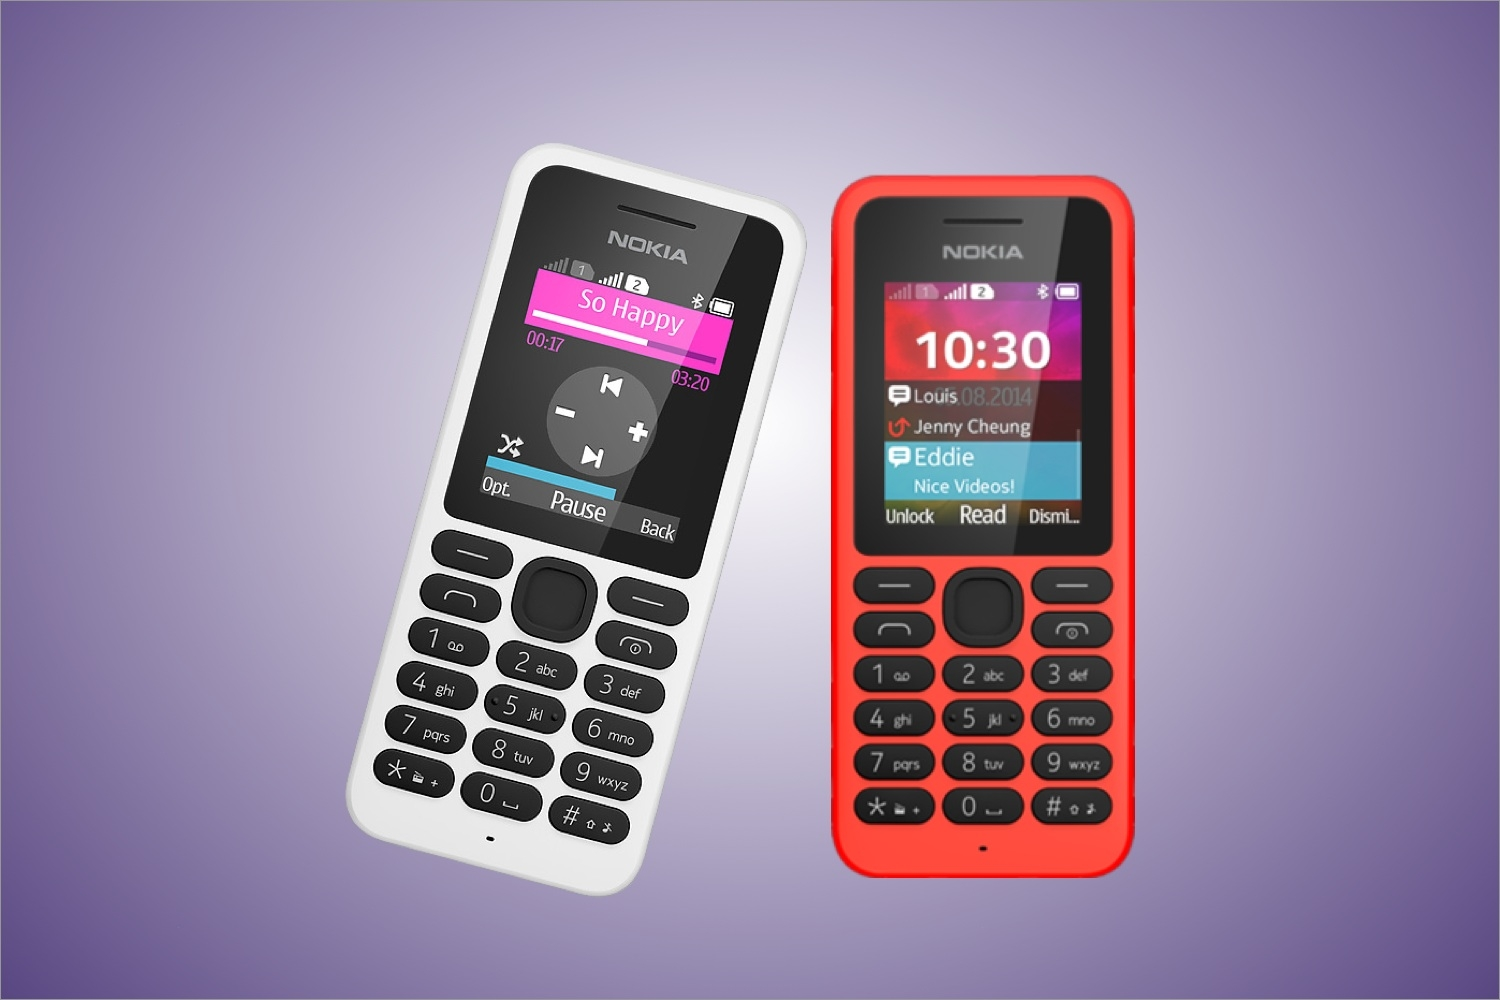 Nokia Bricks Are Back... Costing $25 And Lasting A Month